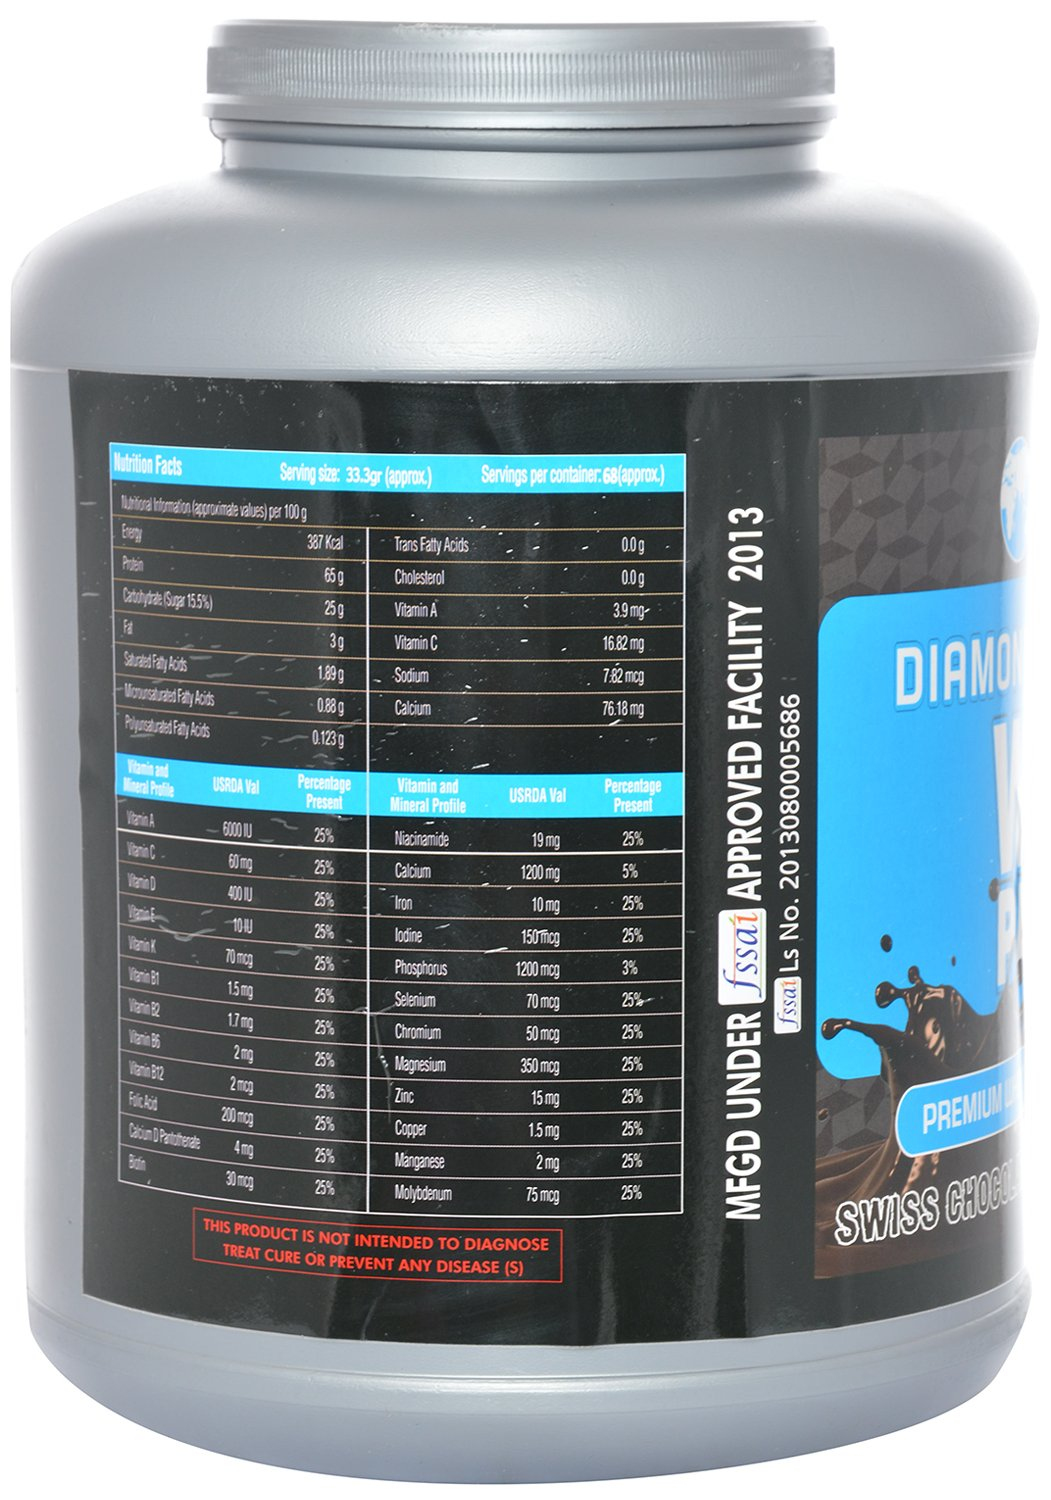 Infotech Nutrition Diamond Whey Protein 226 Kg Health Gold Standard 5 Lbs Optimum Wgs On 5lbs Lb 5lb Isolate Personal Care